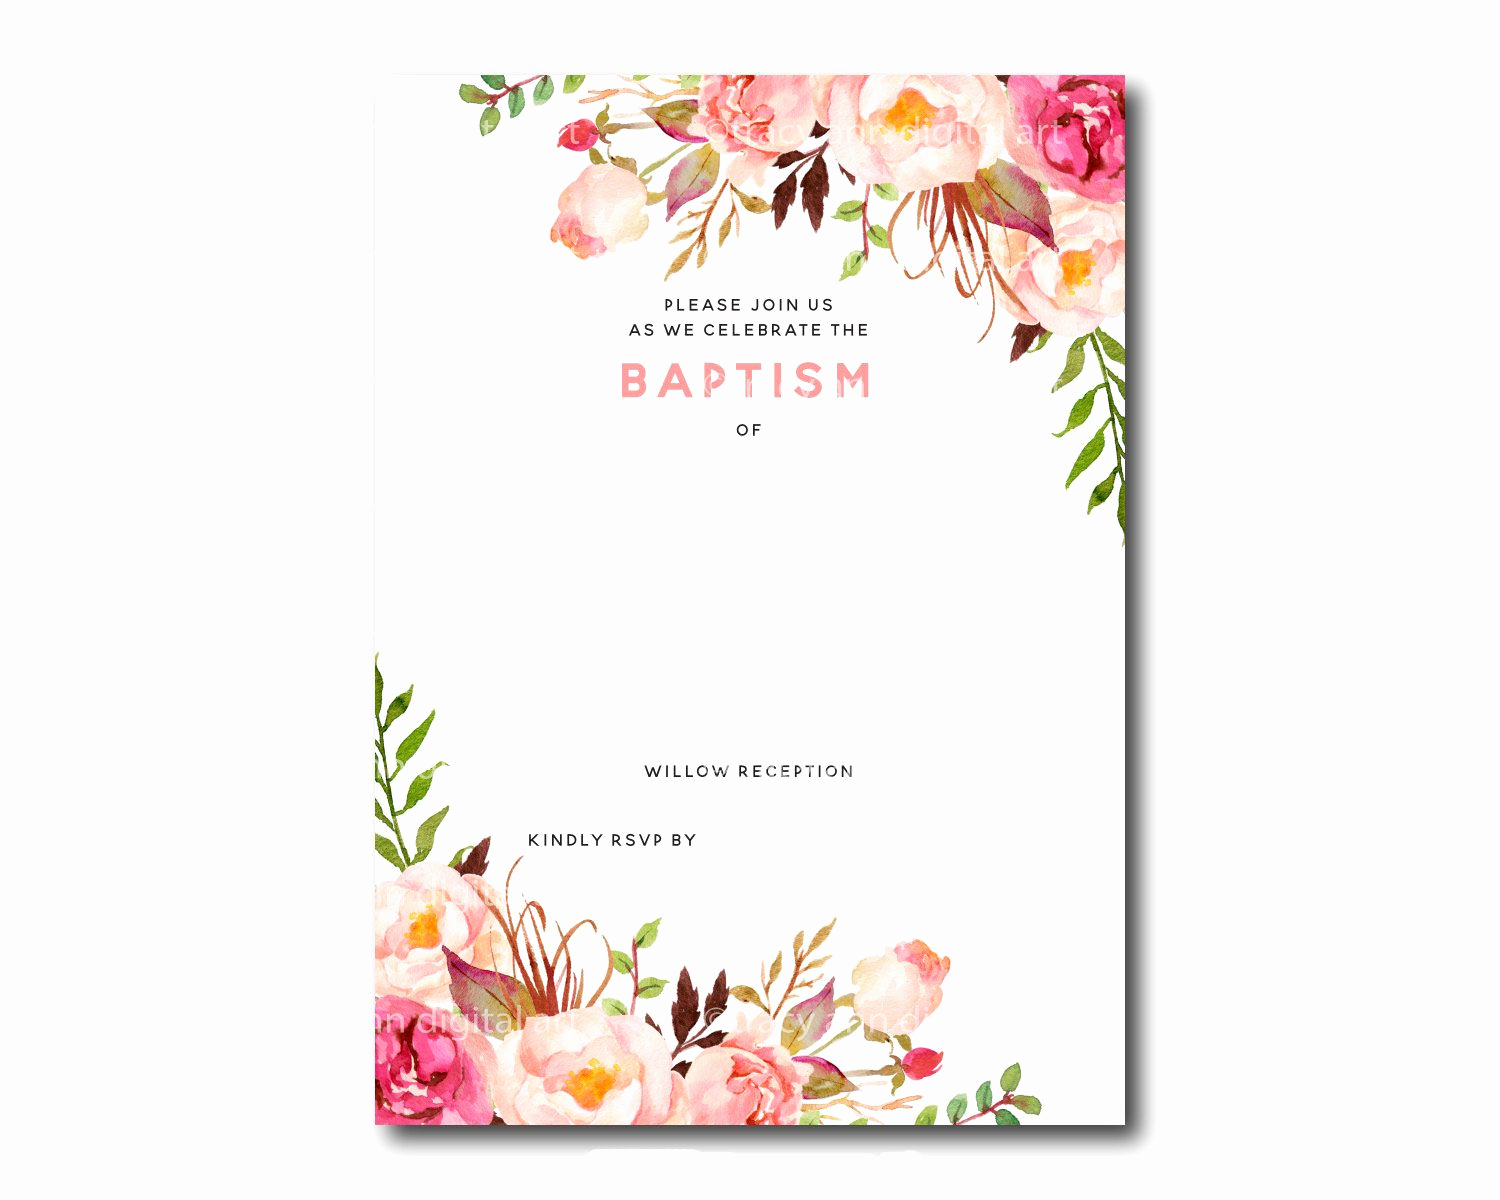 Blank Invitation Templates Free Download Lovely Awesome Free Template Free Printable Baptism Floral